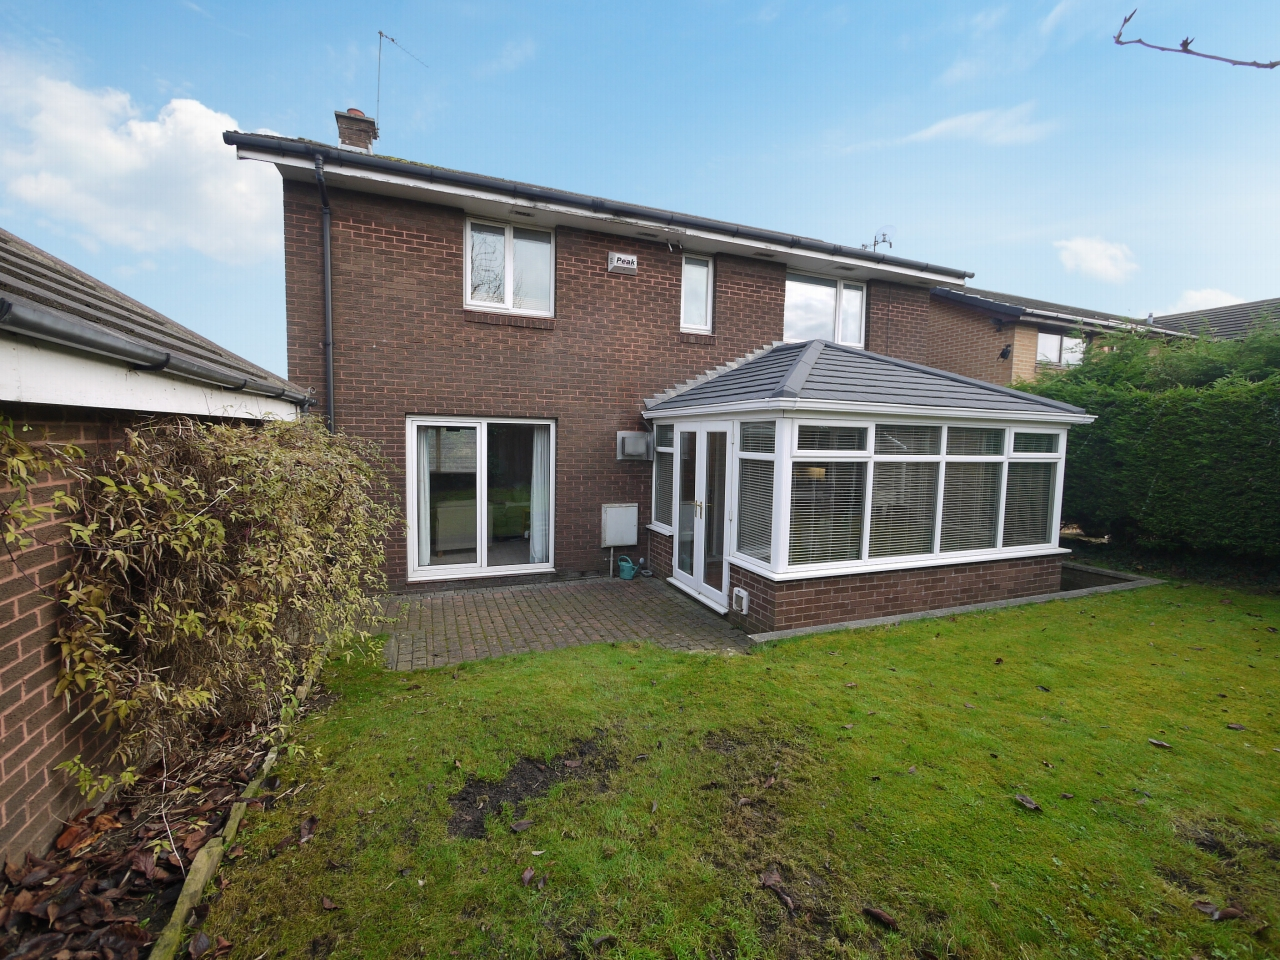 4 bedroom detached house SSTC in Brighouse - Photograph 17.